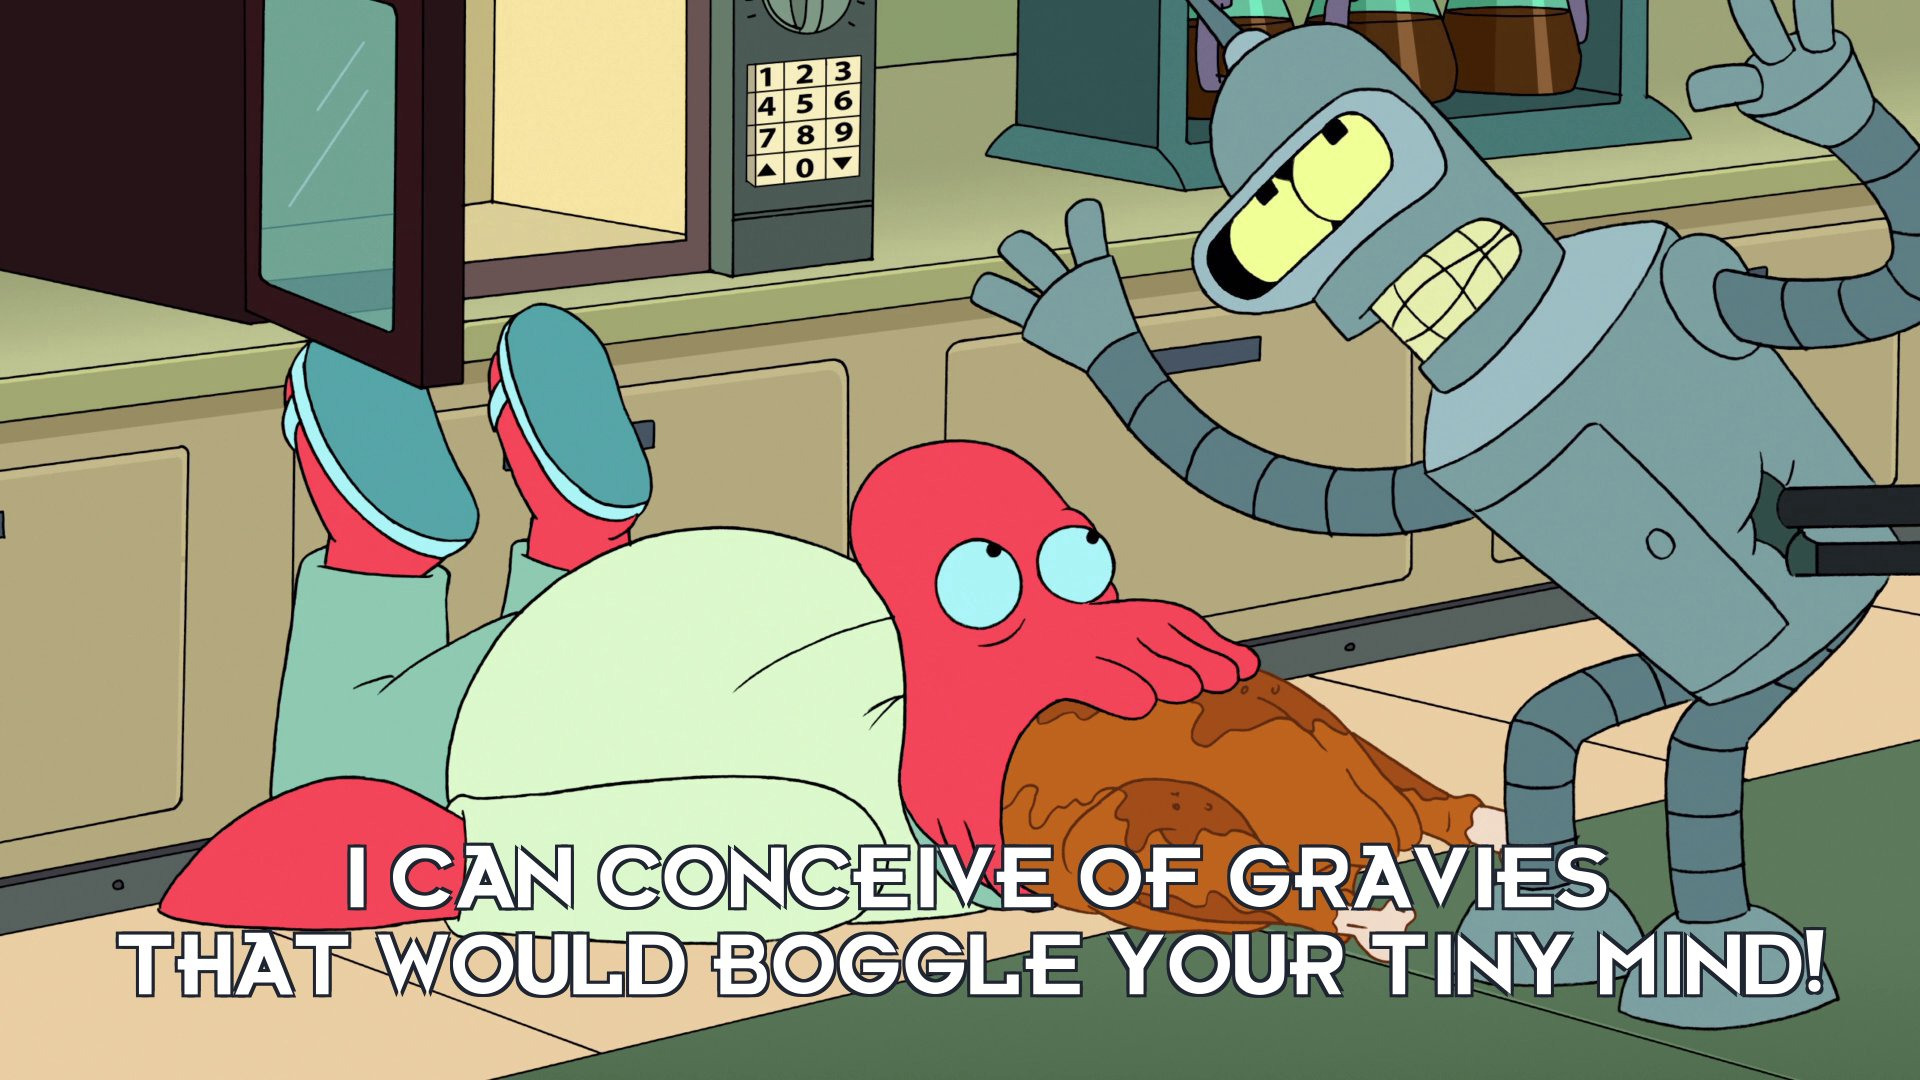 Bender Bending Rodriguez: I can conceive of gravies that would boggle your tiny mind!